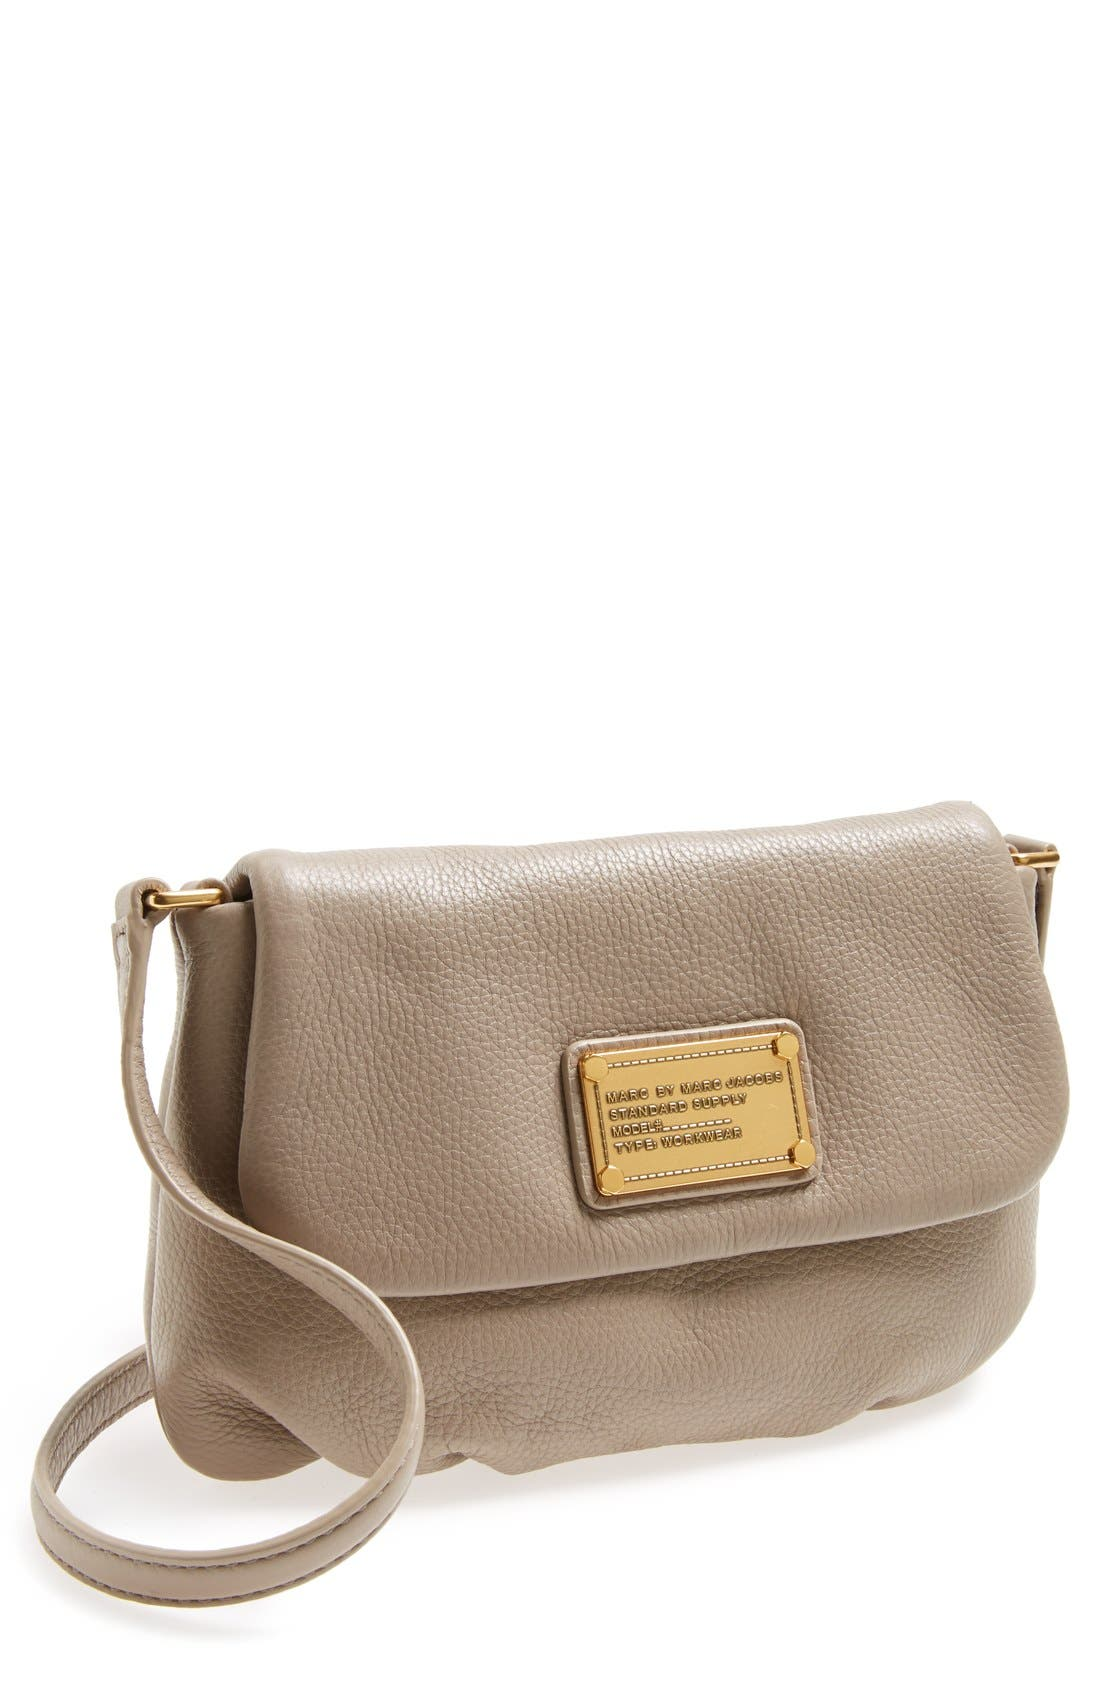 Main Image - MARC BY MARC JACOBS 'Classic Q - Flap Percy' Satchel